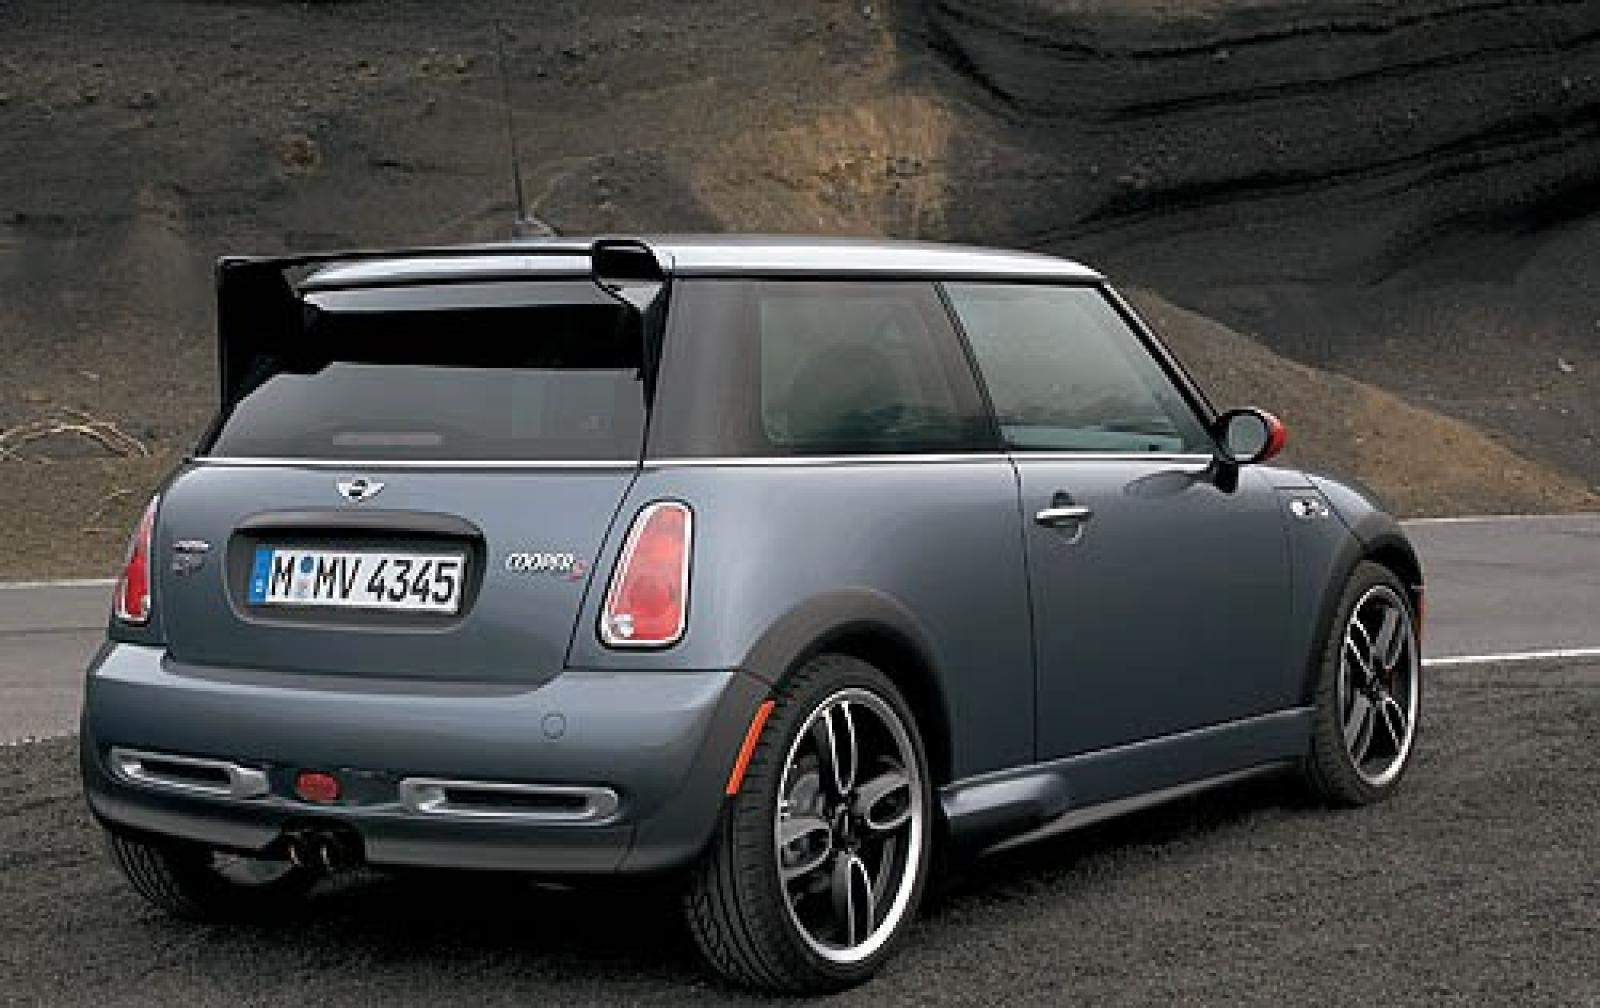 2006 mini cooper information and photos zombiedrive. Black Bedroom Furniture Sets. Home Design Ideas